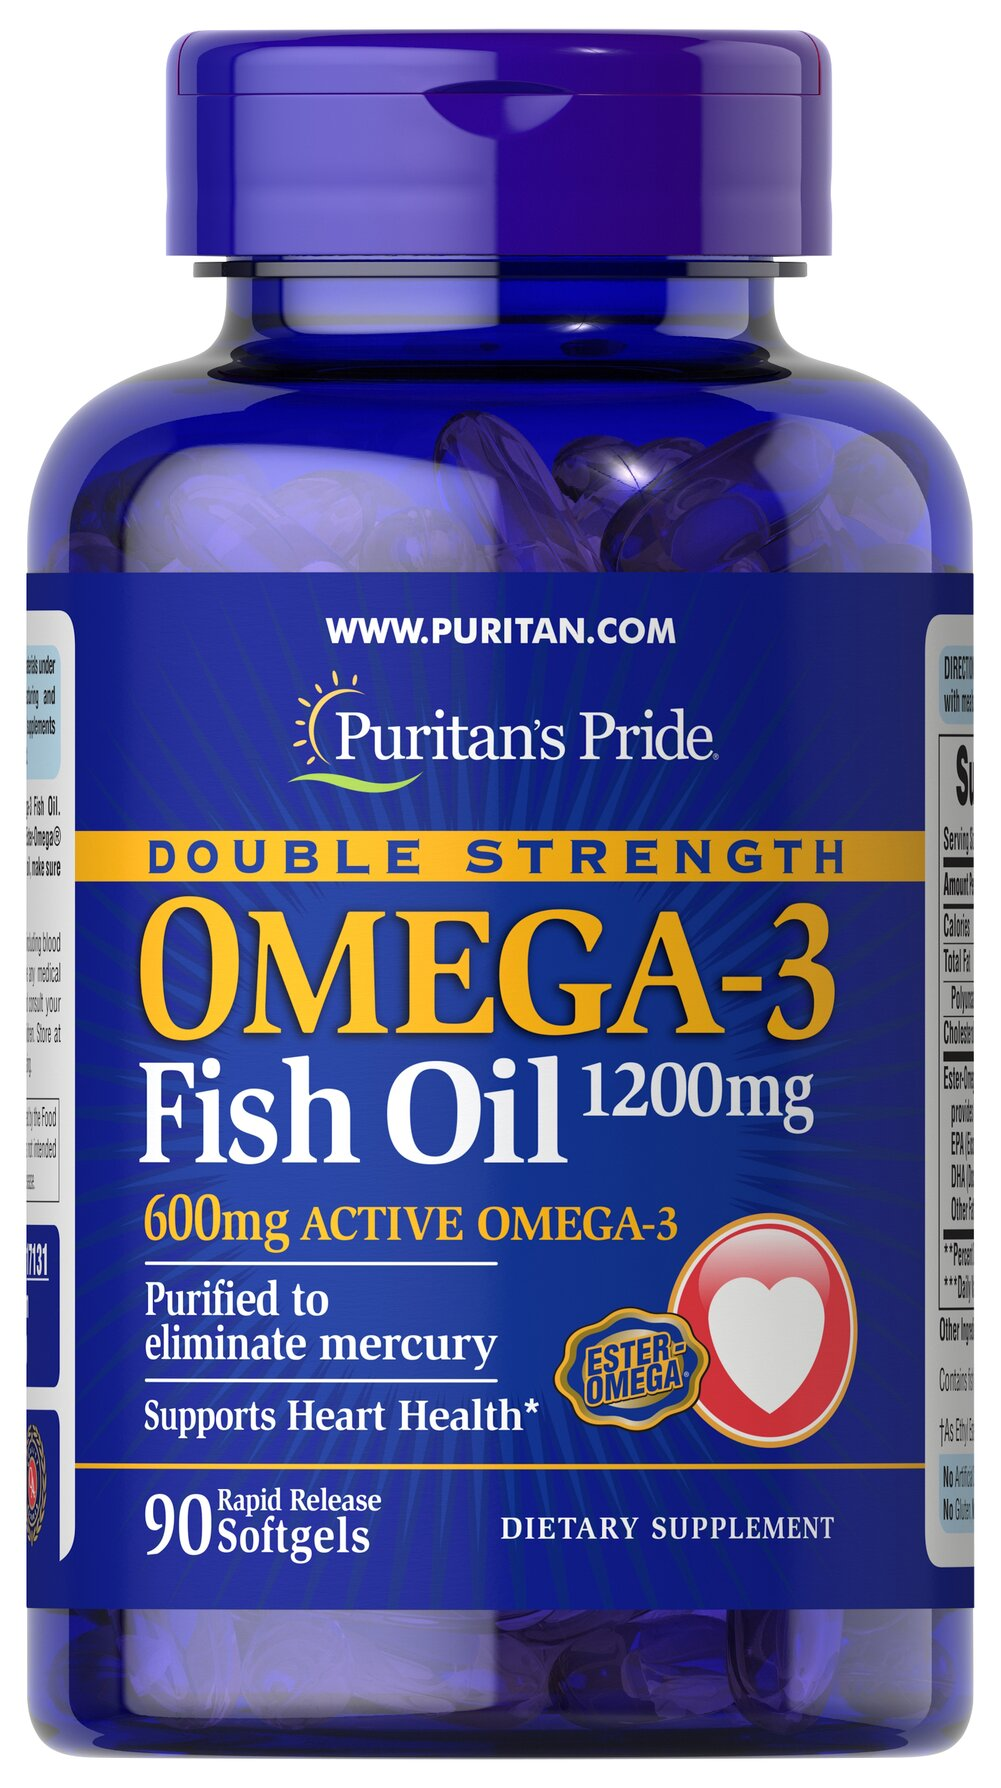 Double Strength Omega-3 Fish Oil 1200 mg/600 mg Omega-3  90 Softgels 1200 mg $24.99